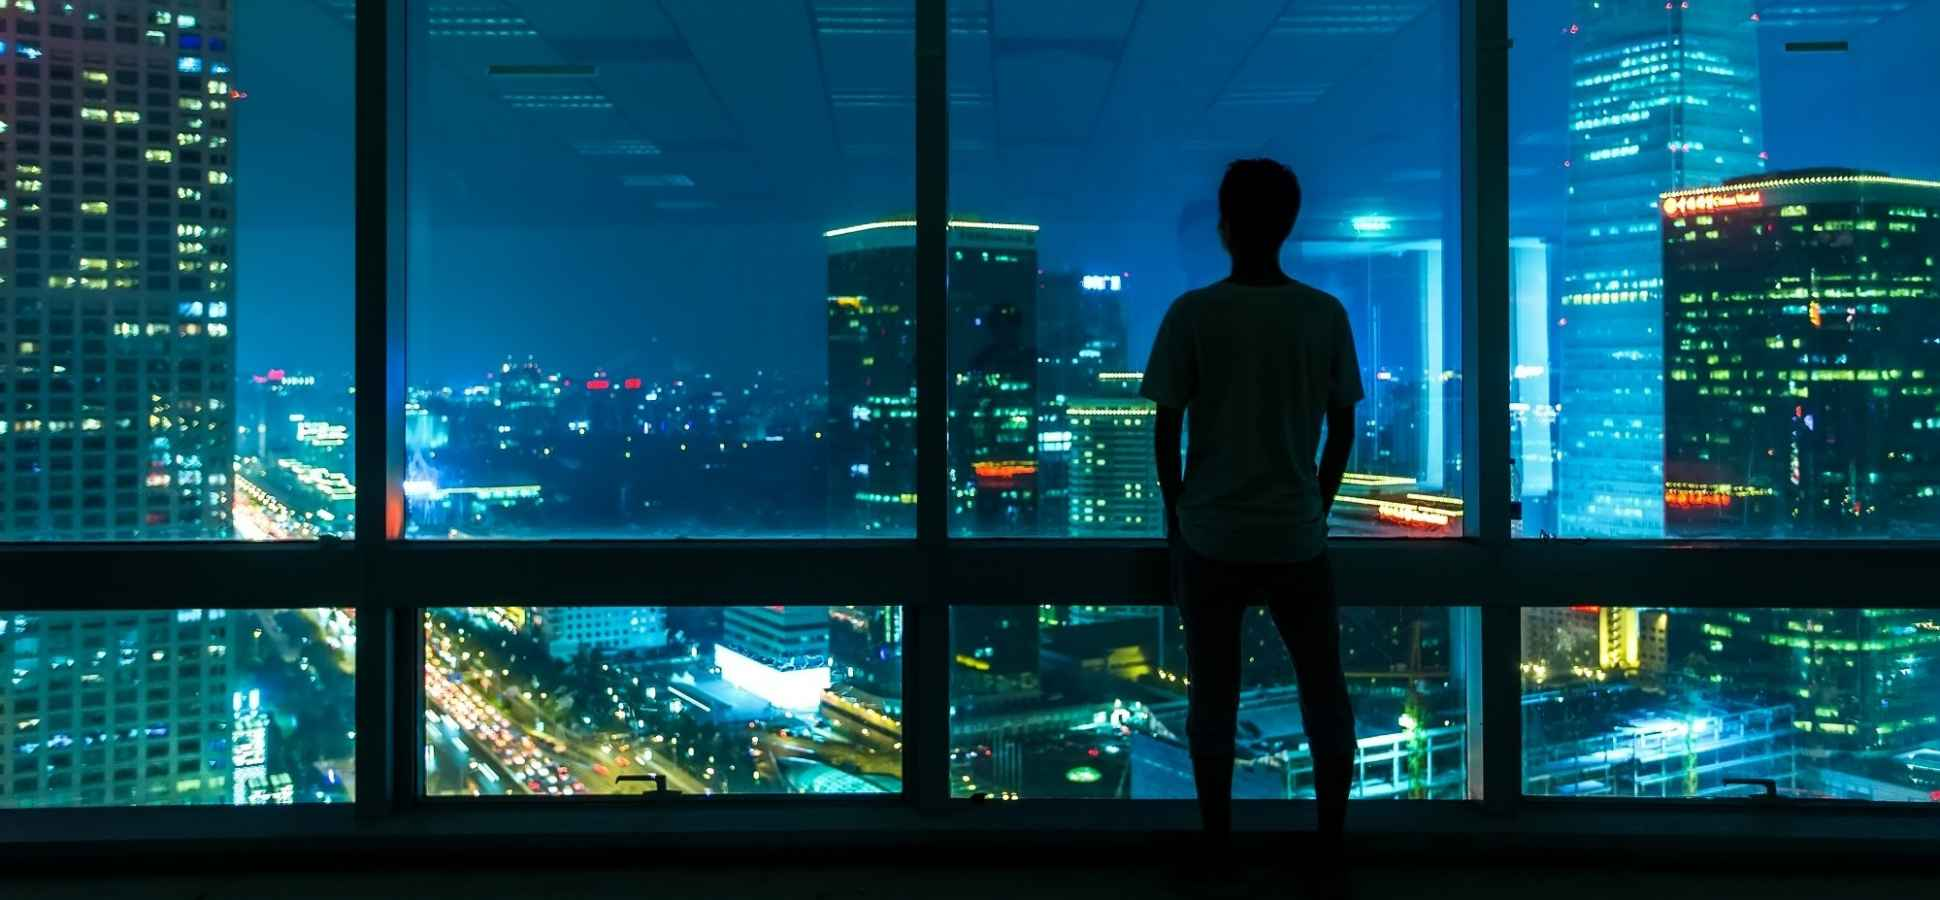 Night Owls May Face Special Challenges >> How To Survive As A Night Owl In A World Designed For Morning People